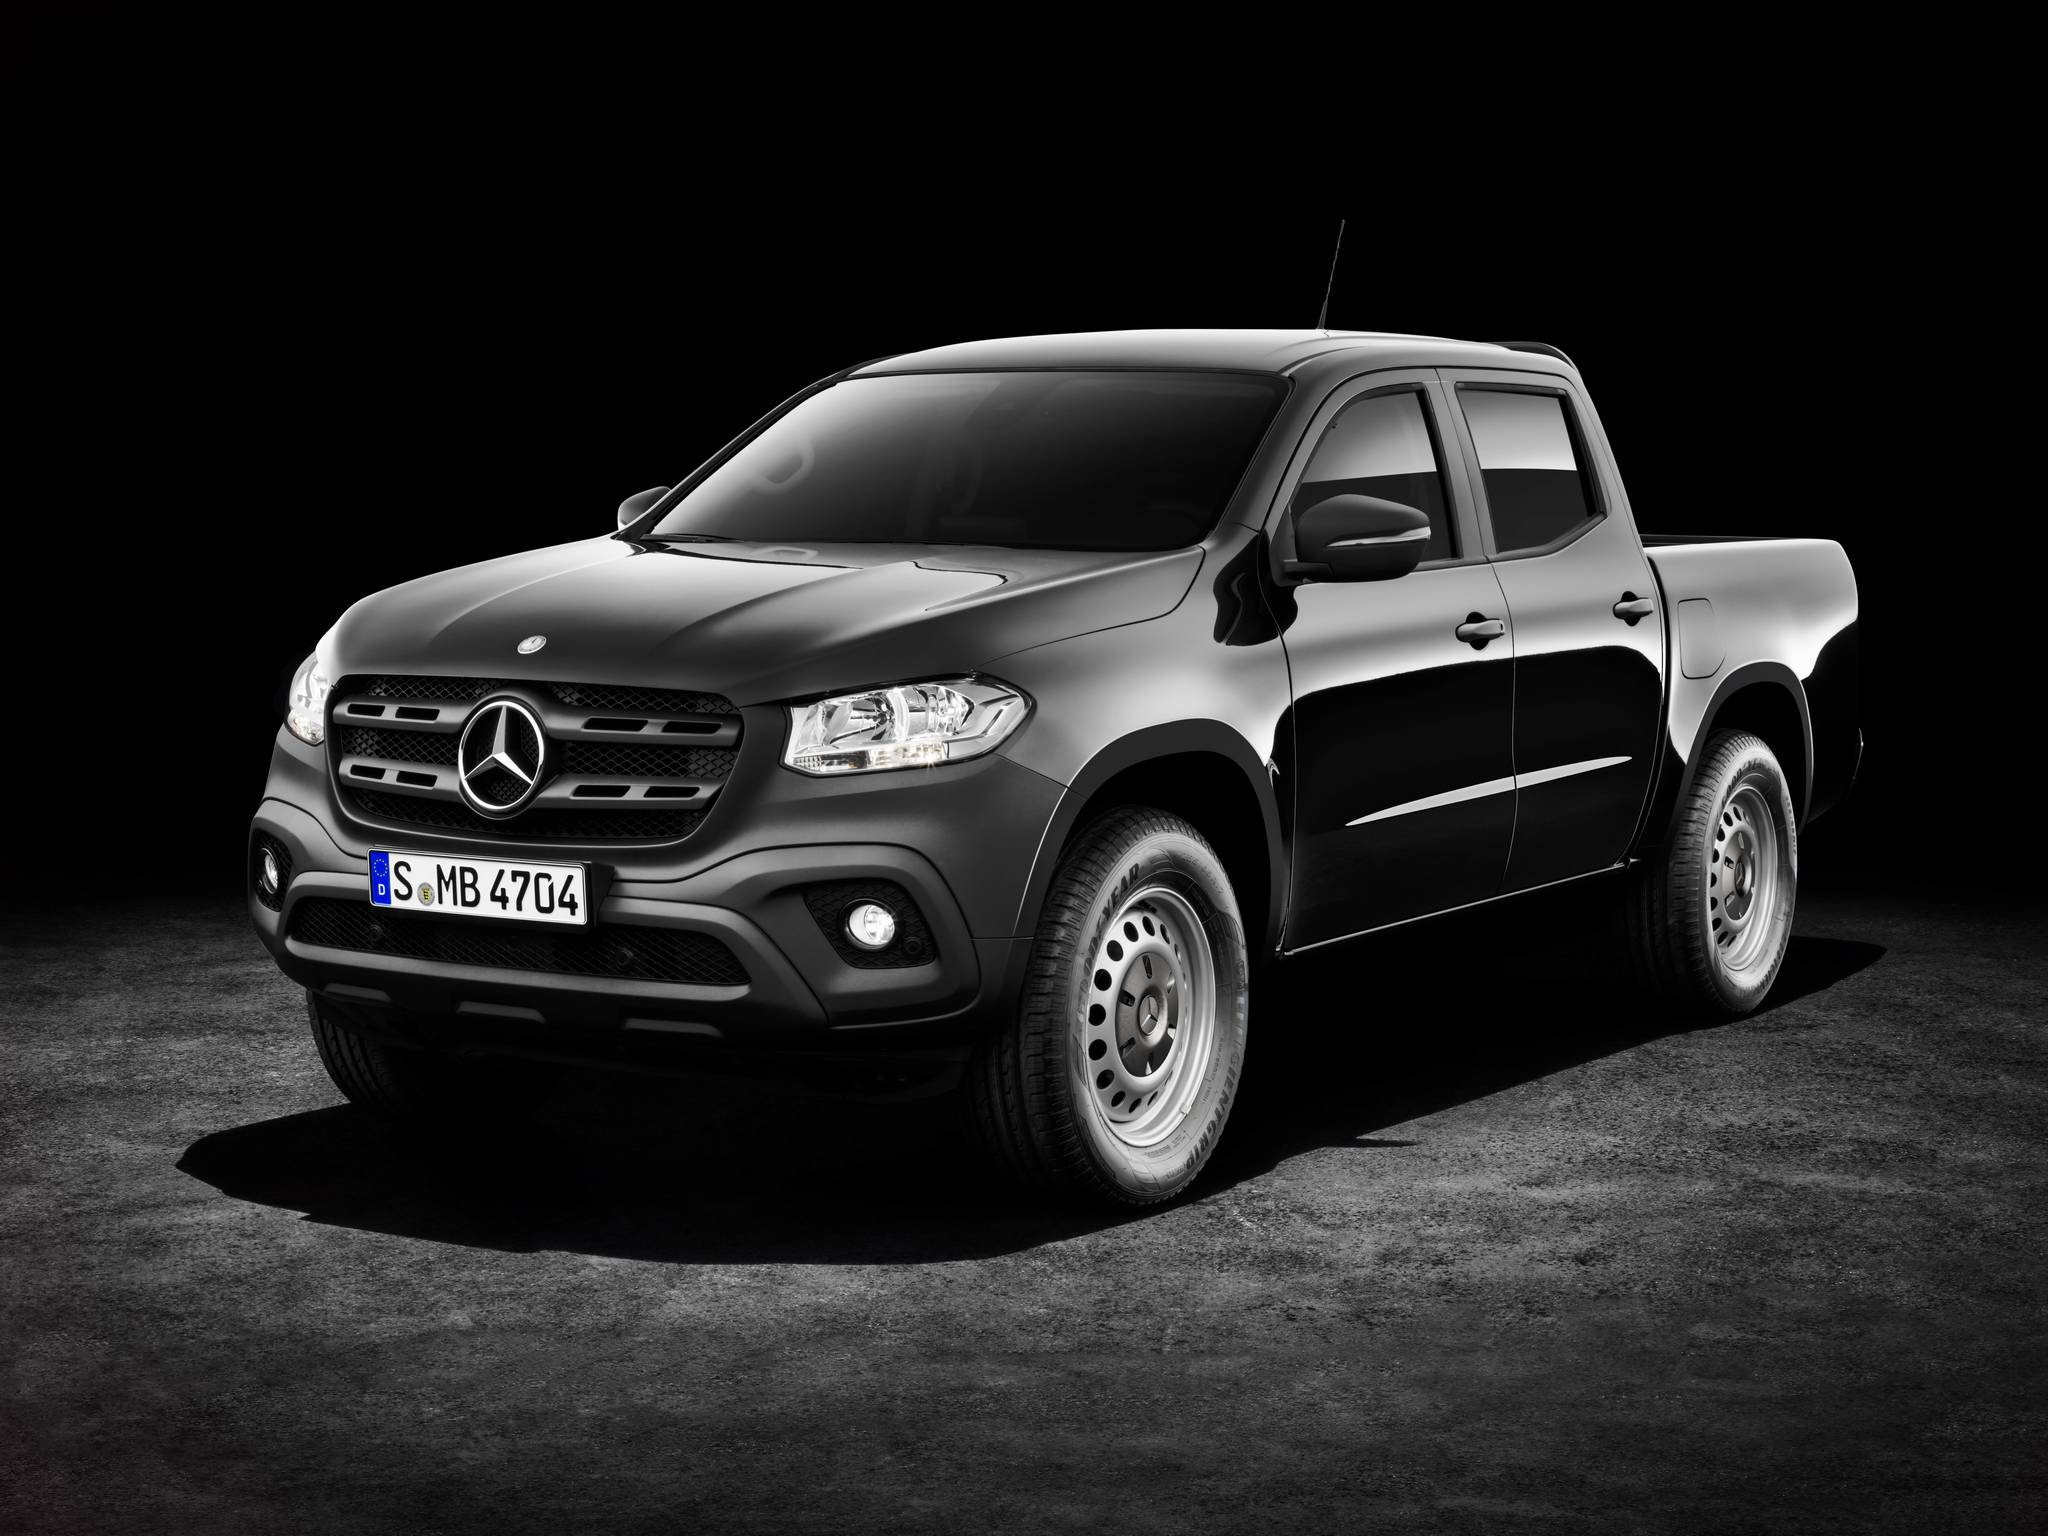 2018 mercedes benz x class first impression gtspirit for Camioneta mercedes benz